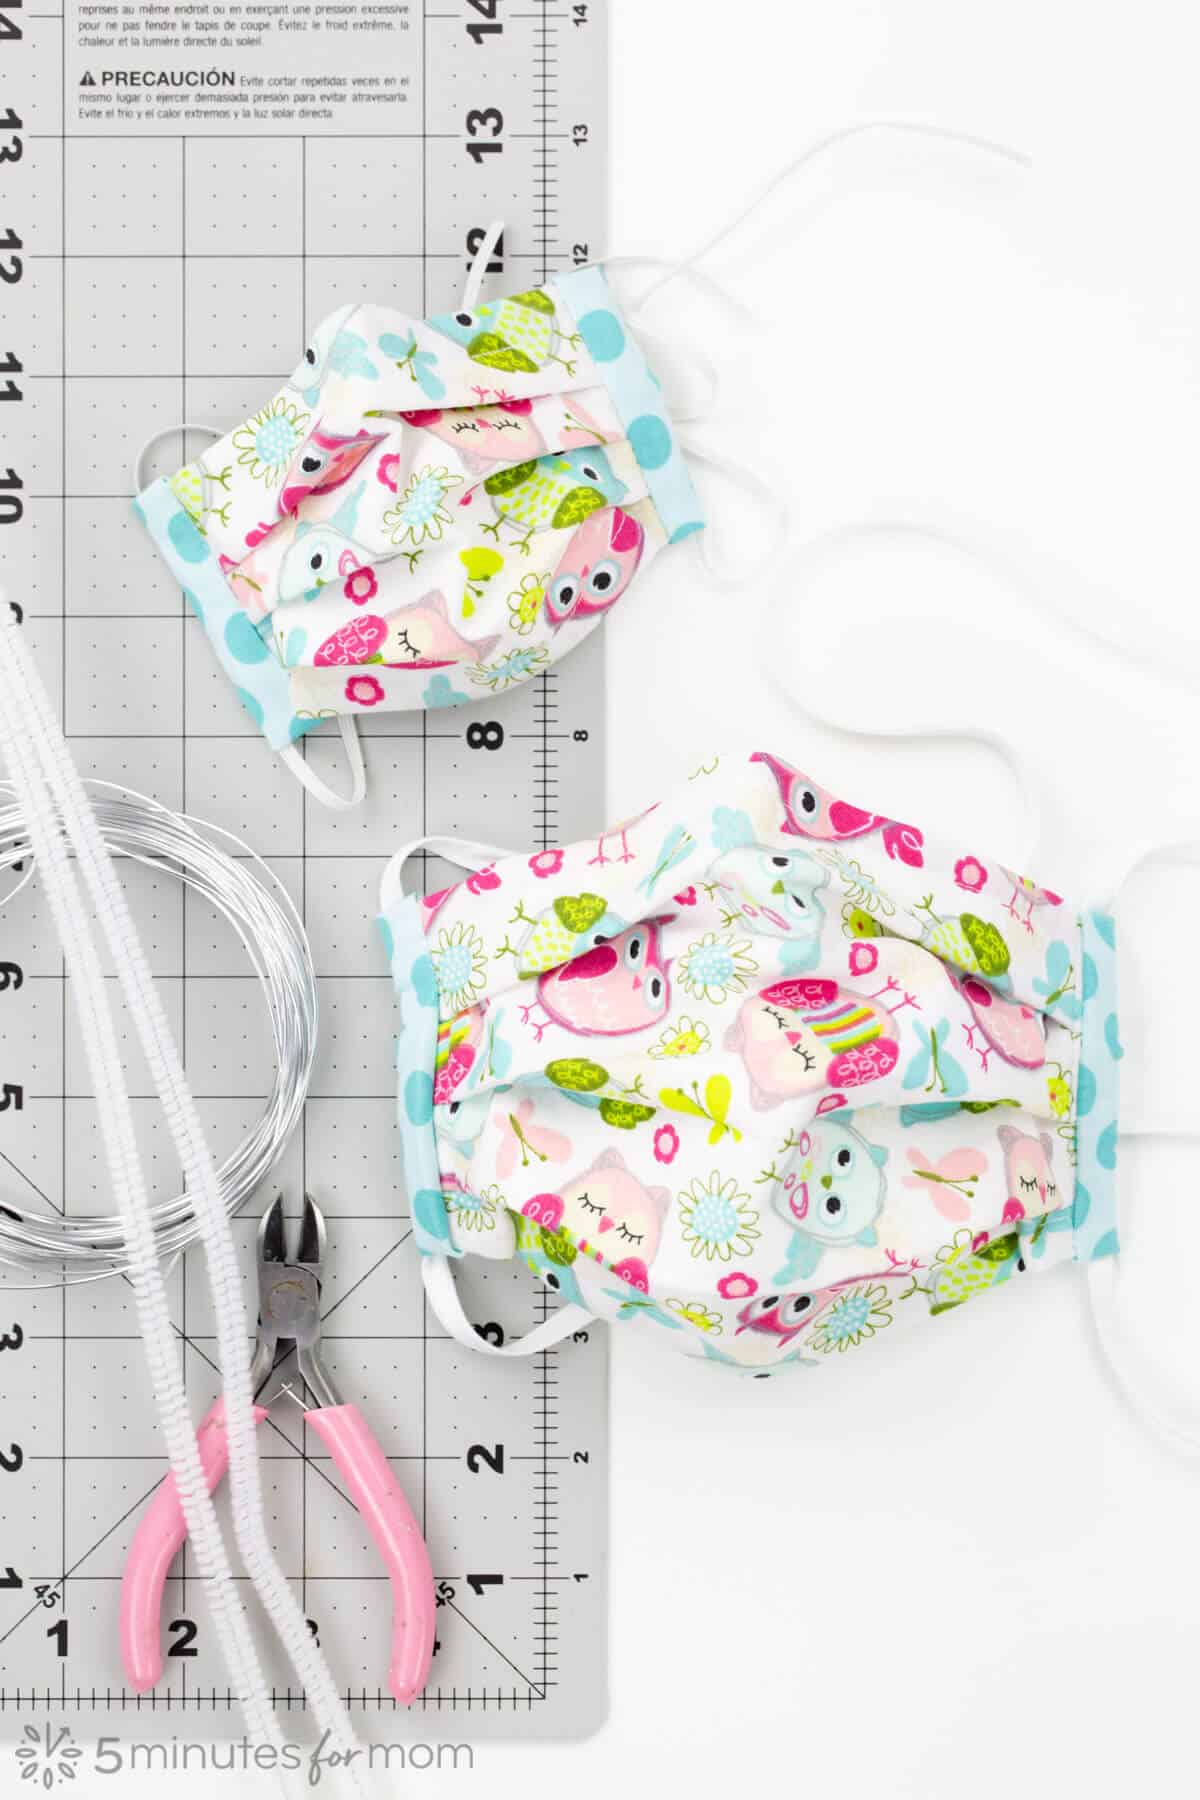 How to Make a DIY Face Mask - Use this face mask pattern and video tutorial to make cloth face masks for your family or to donate.